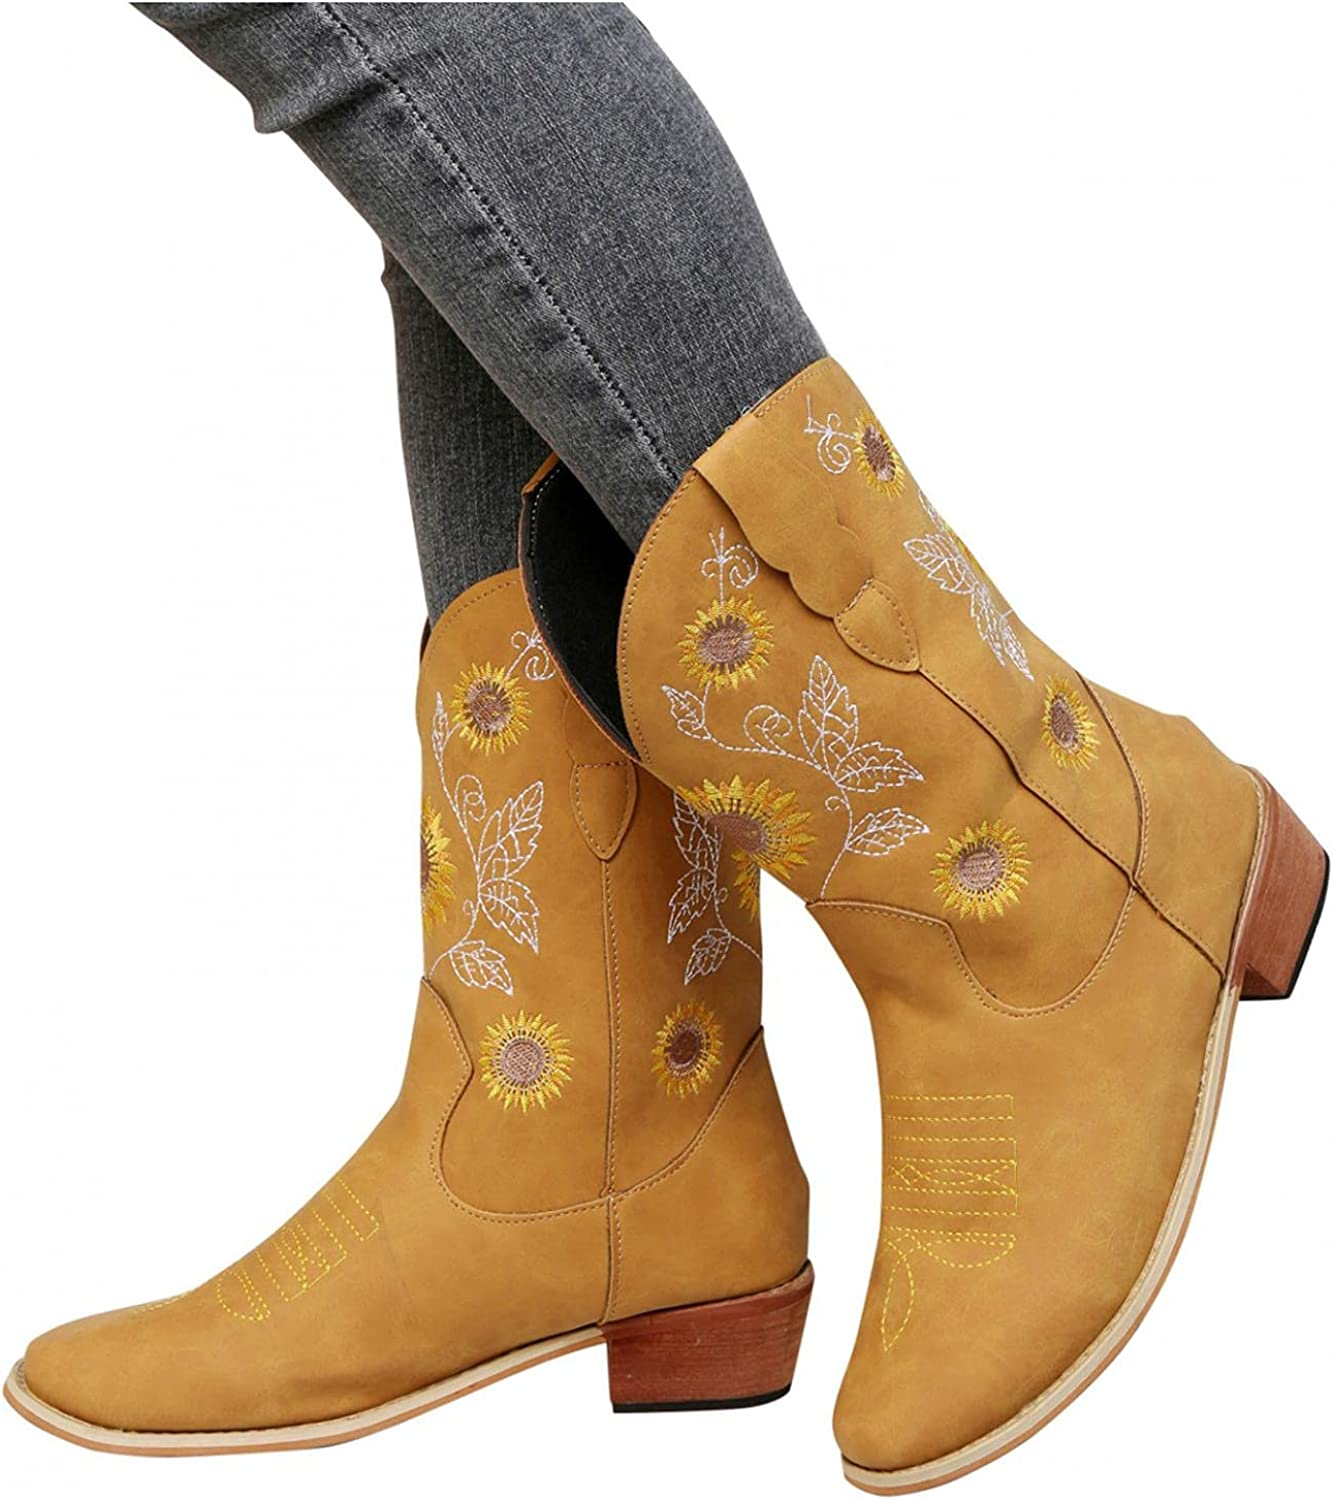 AODONG Cowboy Boots for Women Chunky Heel Sunflowers Embroidery Boots Retro Square Toe Pull On Boots Western Mid Calf Shoes